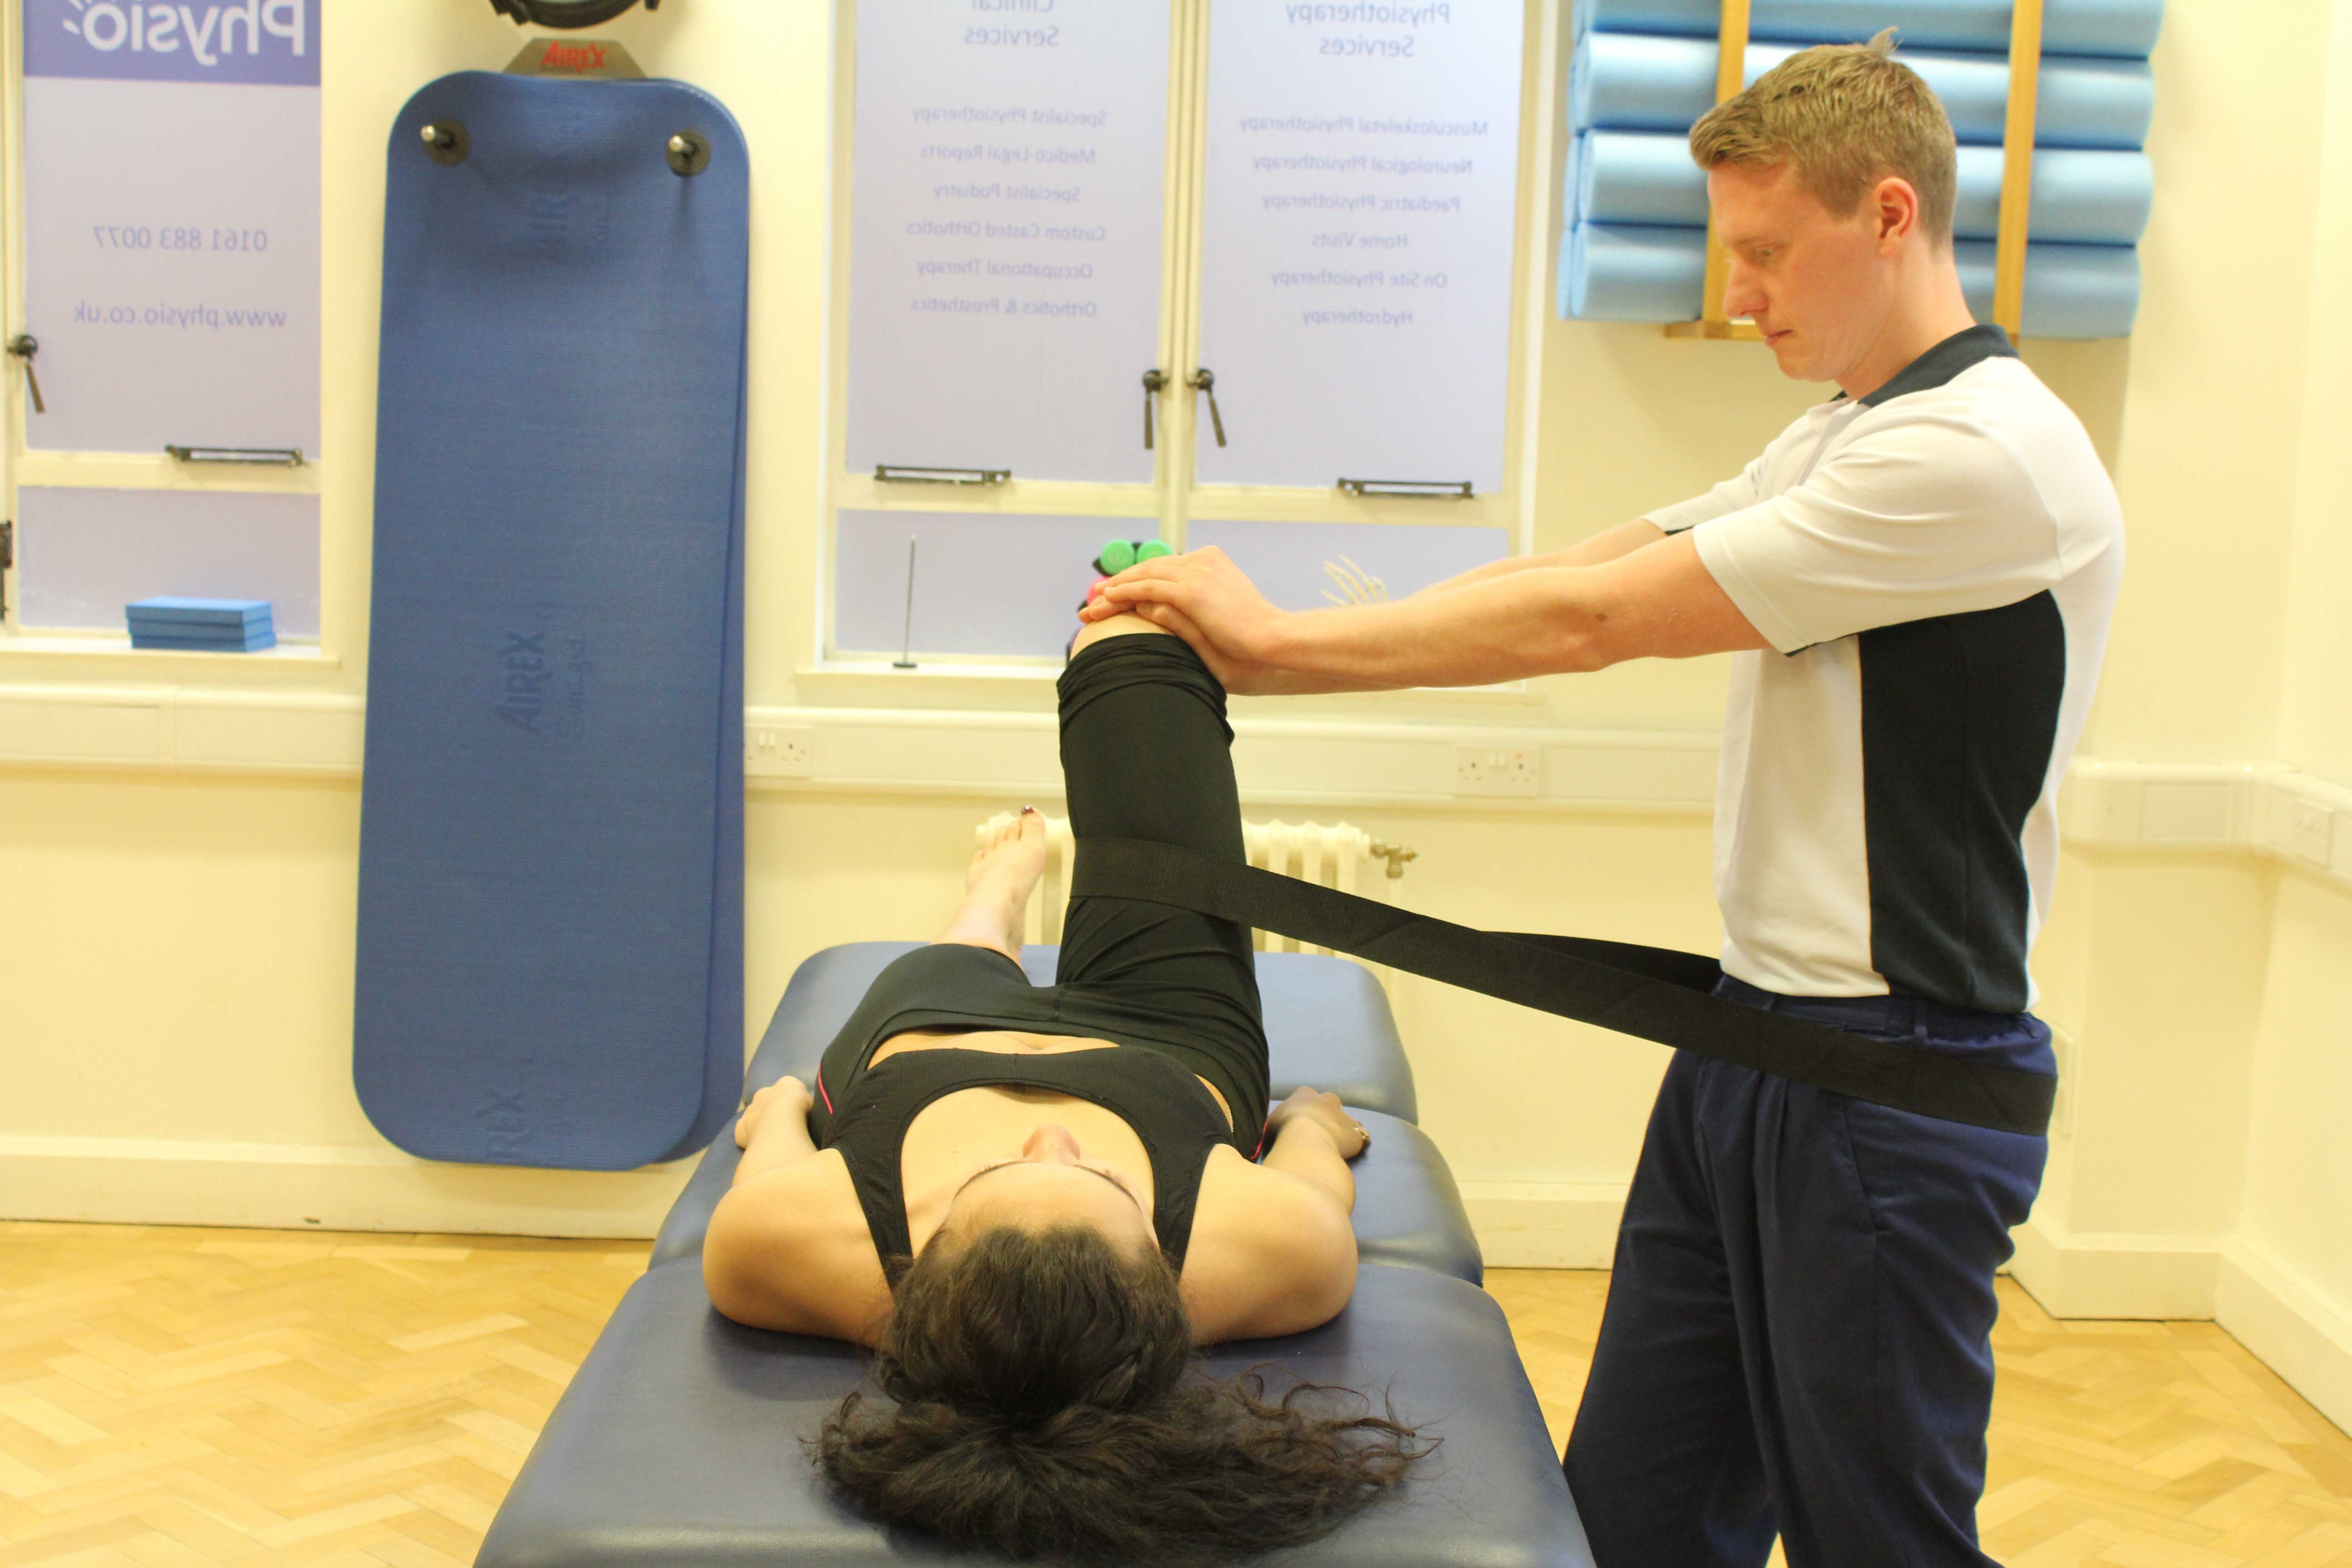 Mobilisation and joint distraction techniques to relieve pain and stiffness in the hip joint